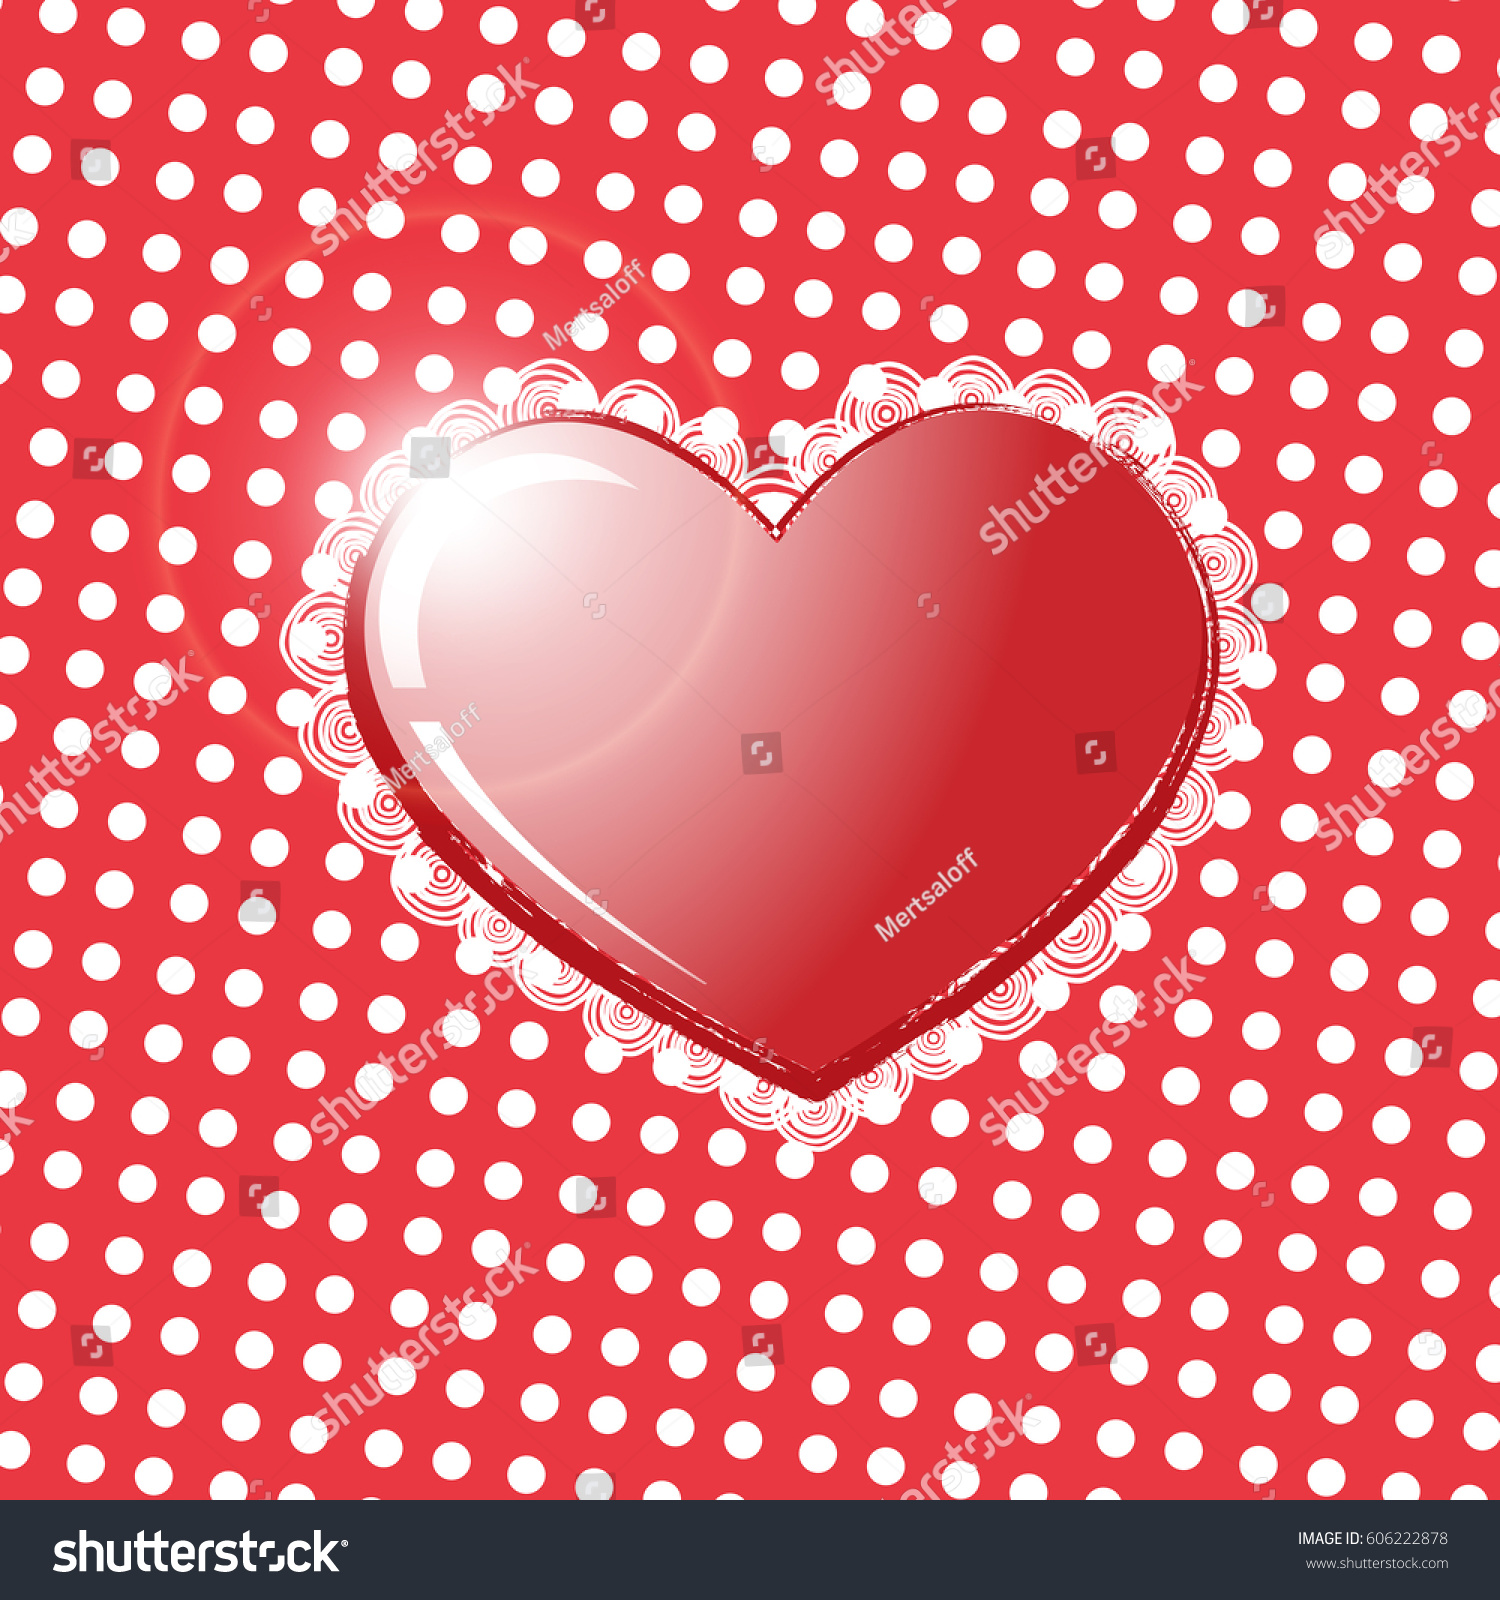 Big Red Heart Isolated On Transparent Stock Vector 606222878 ...